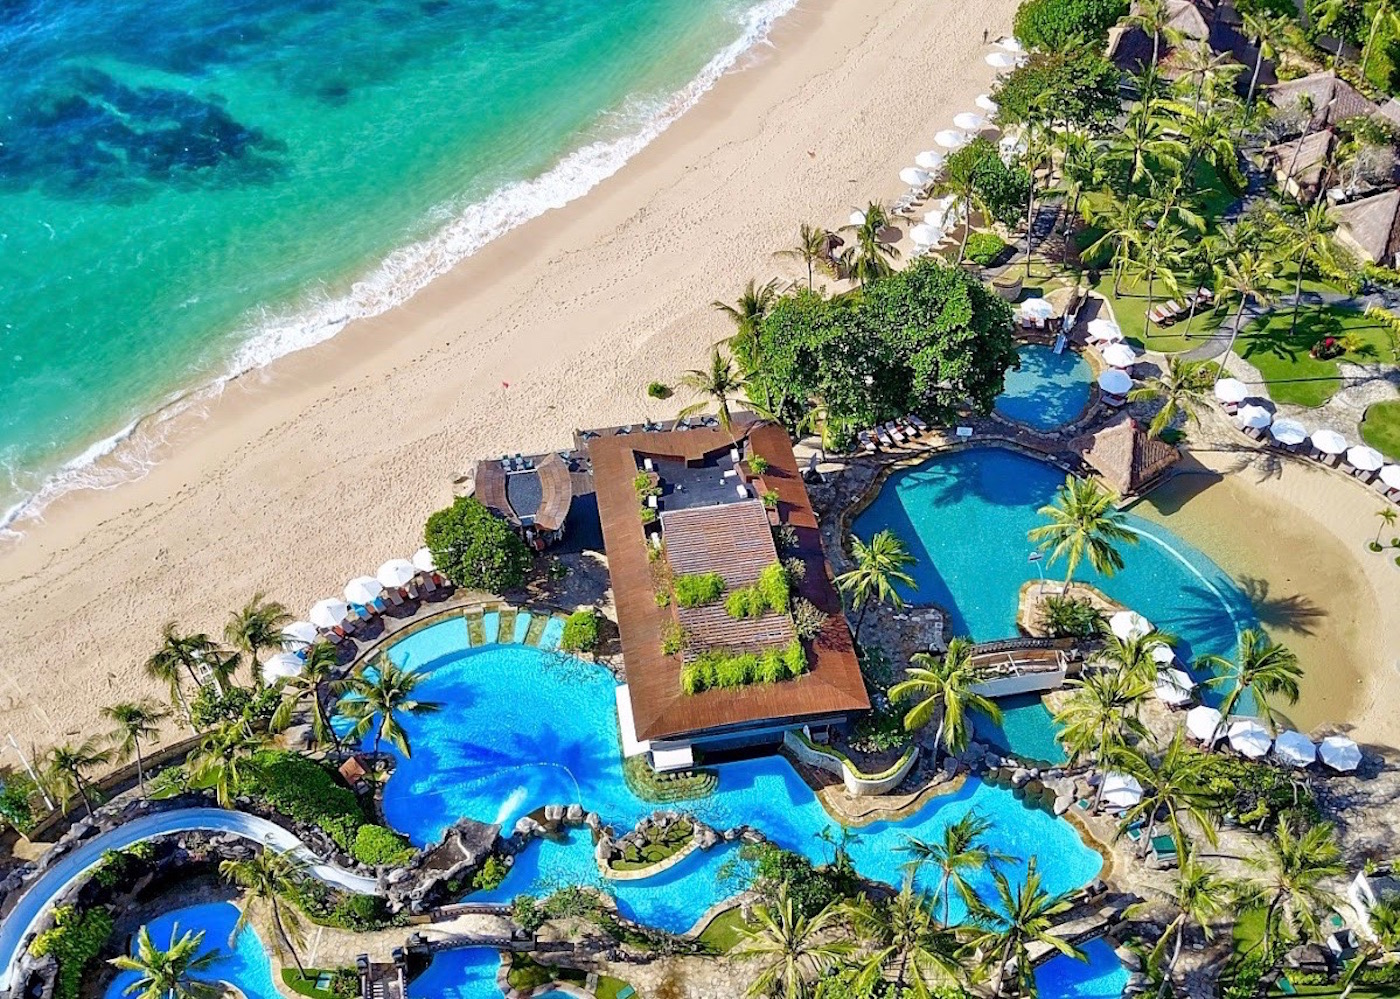 Pool Aerial of Hilton Bali Resort